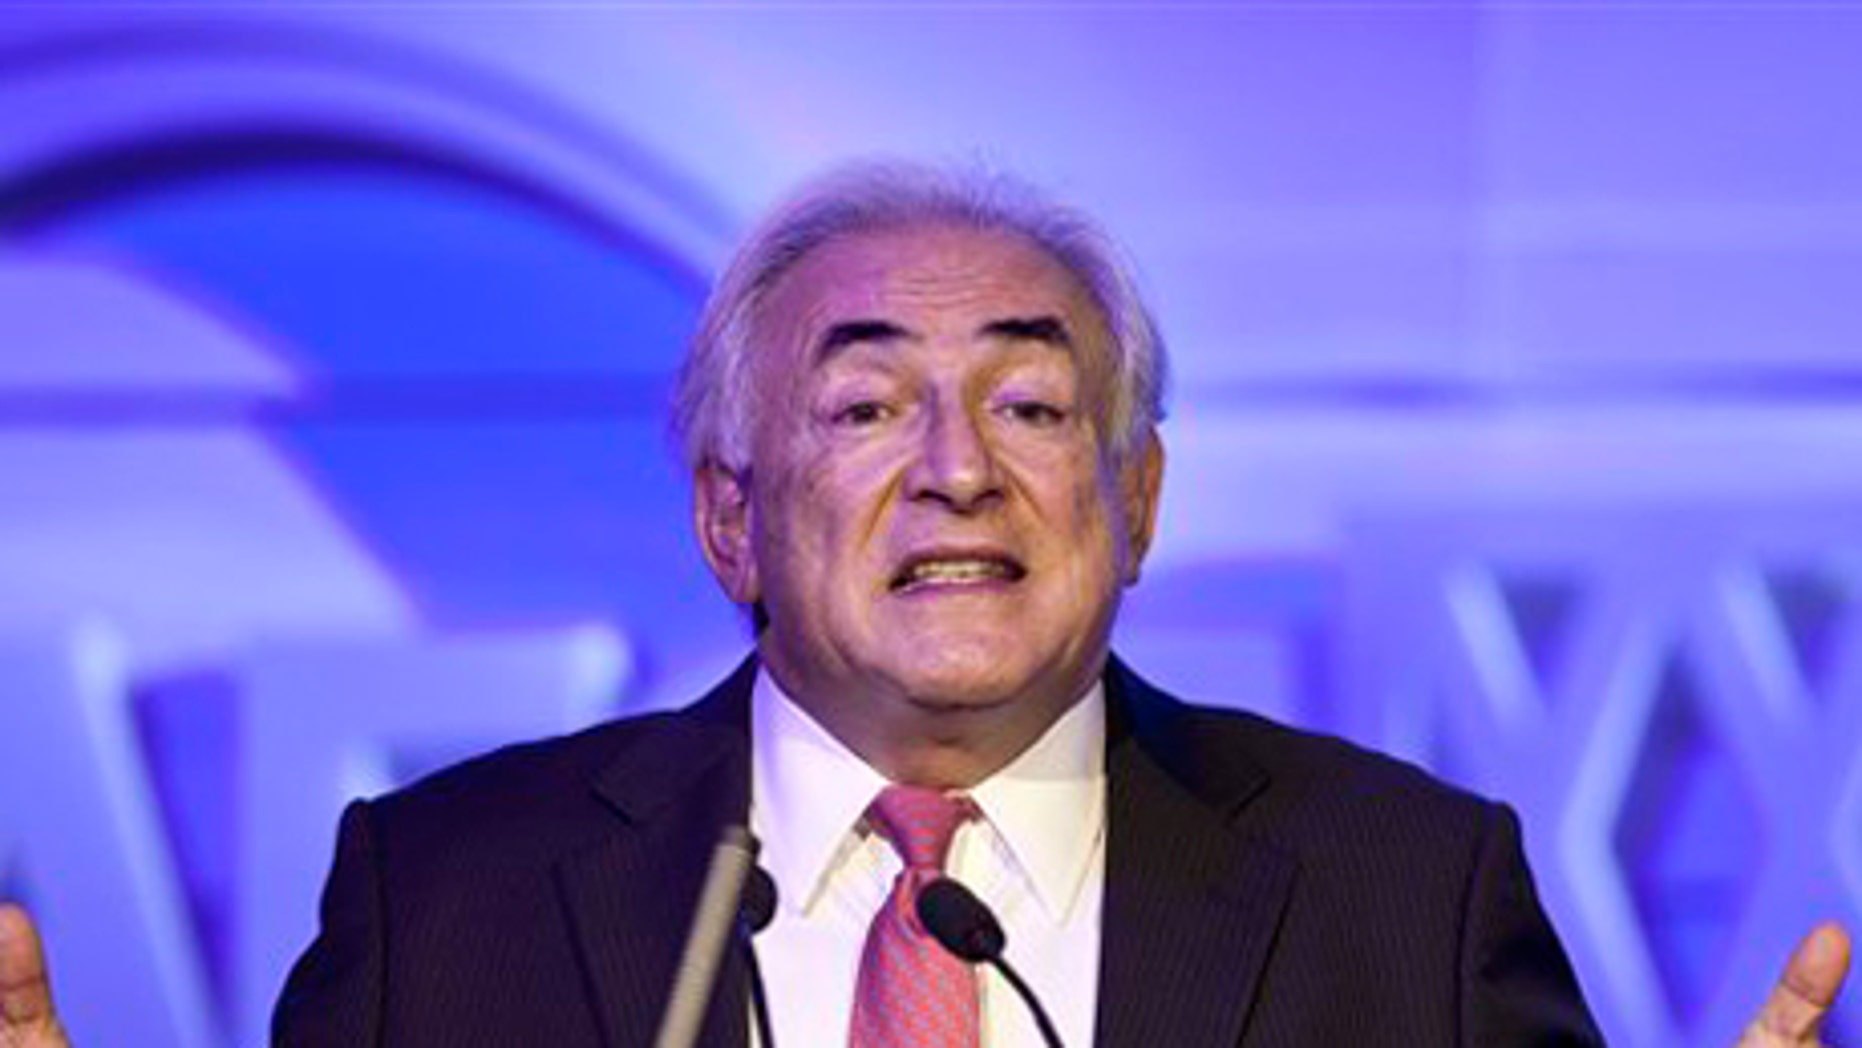 Dec. 19, 2011: Former IMF head Dominique Strauss-Kahn gestures as he speaks at an economy conference organized by Chinese Internet company Netease in Beijing, China.